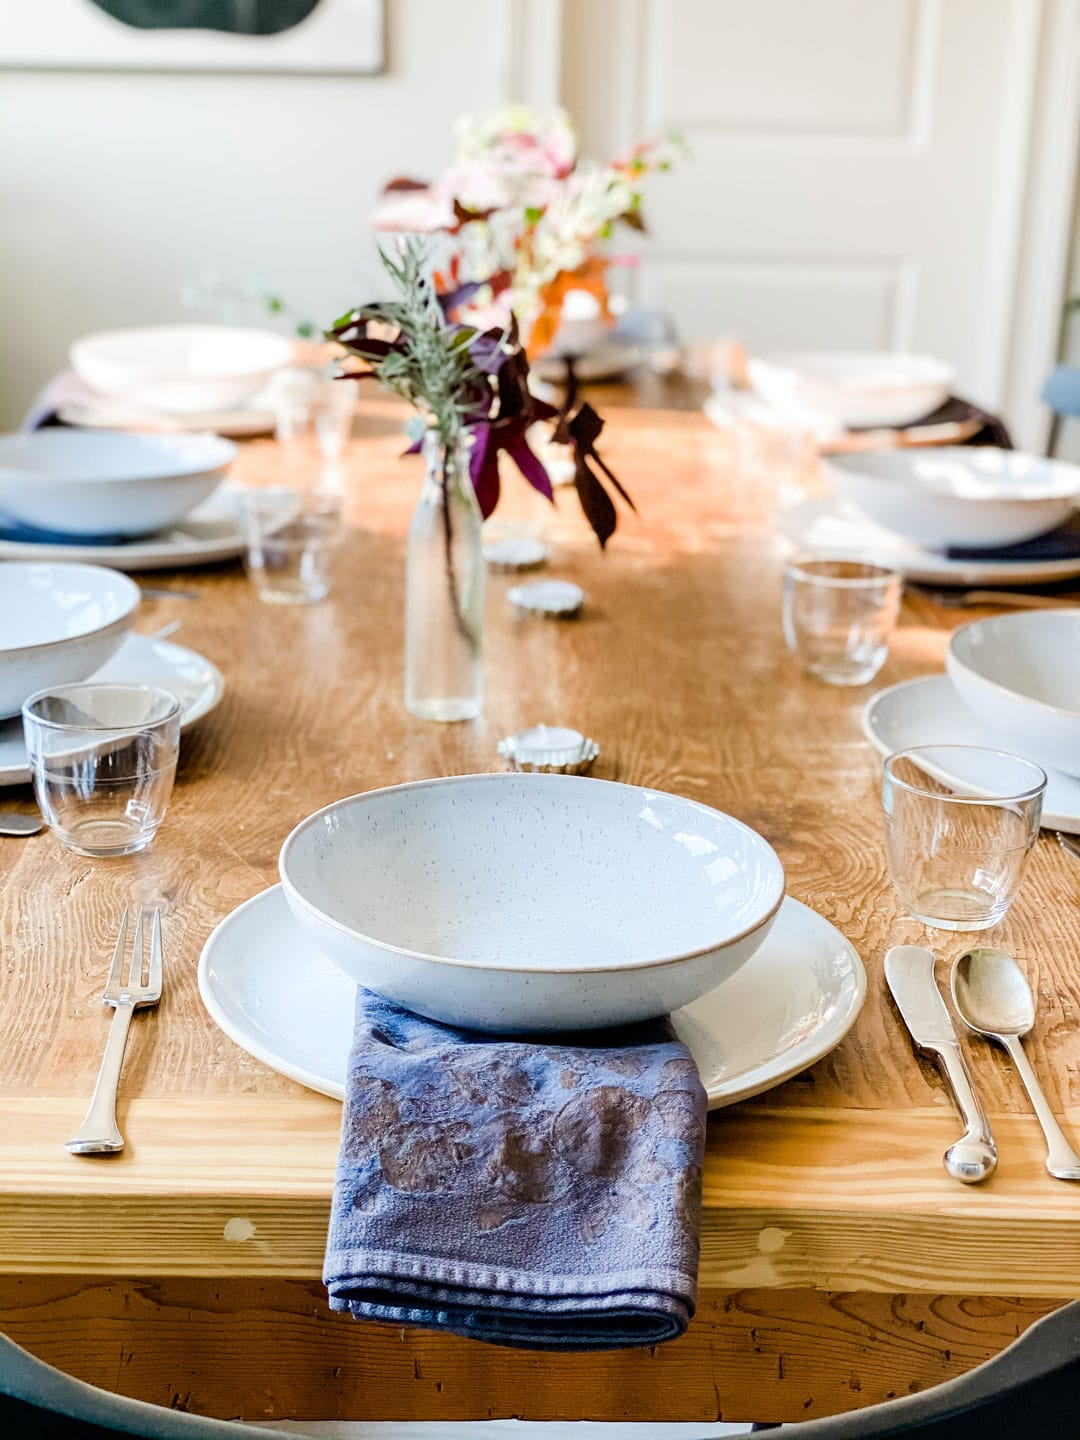 Lifestyle blogger Annie Diamond shares how she dyed some 30 year old napkins using black RIT dye